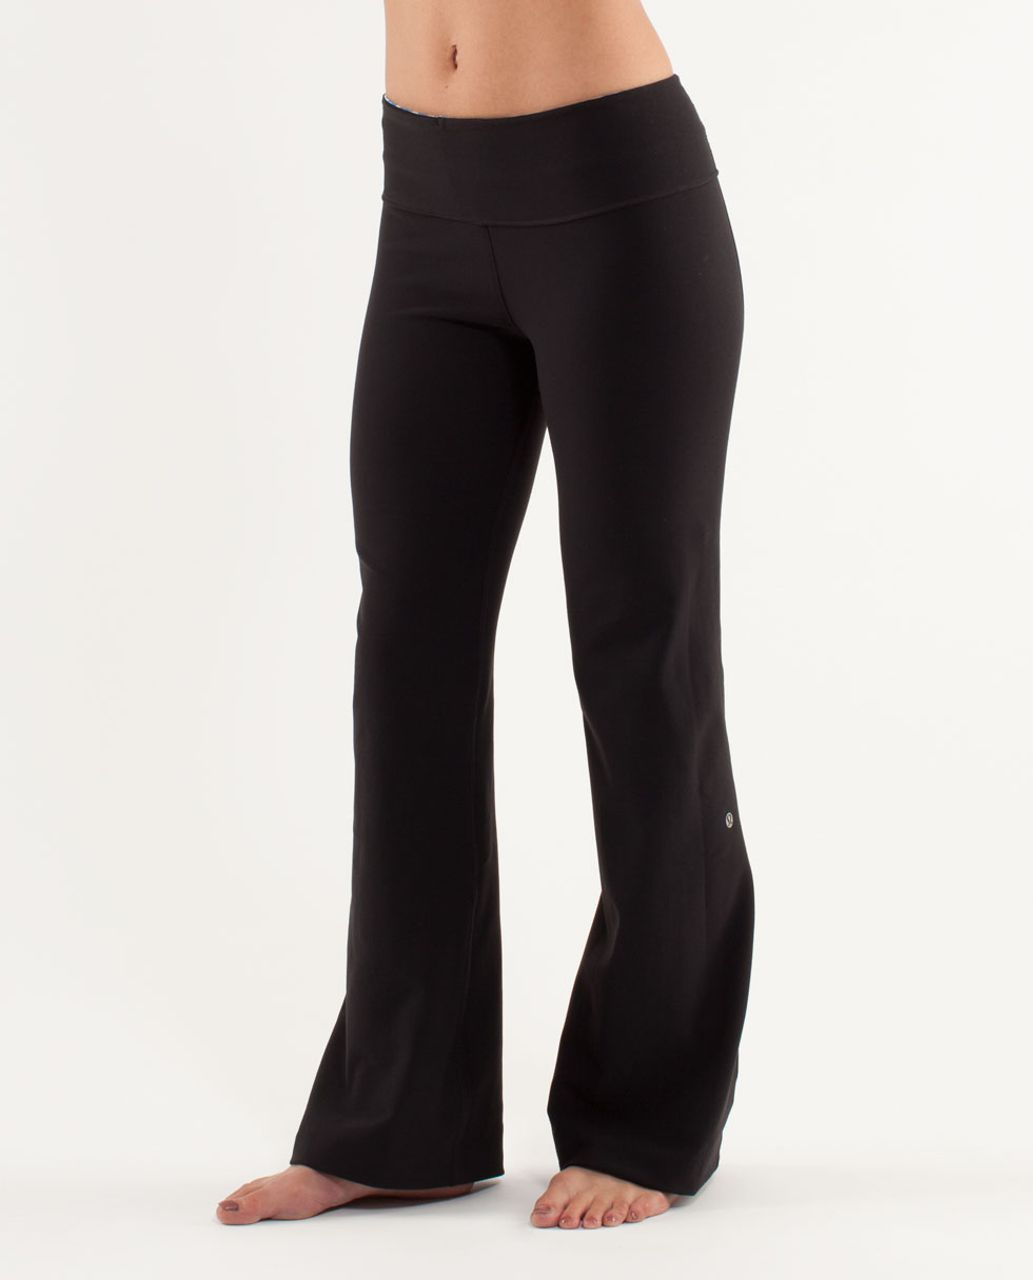 Lululemon Groove Pant (Tall) - Black /  Beachy Floral White Porcelaine /  Wee Stripe White Porcelaine